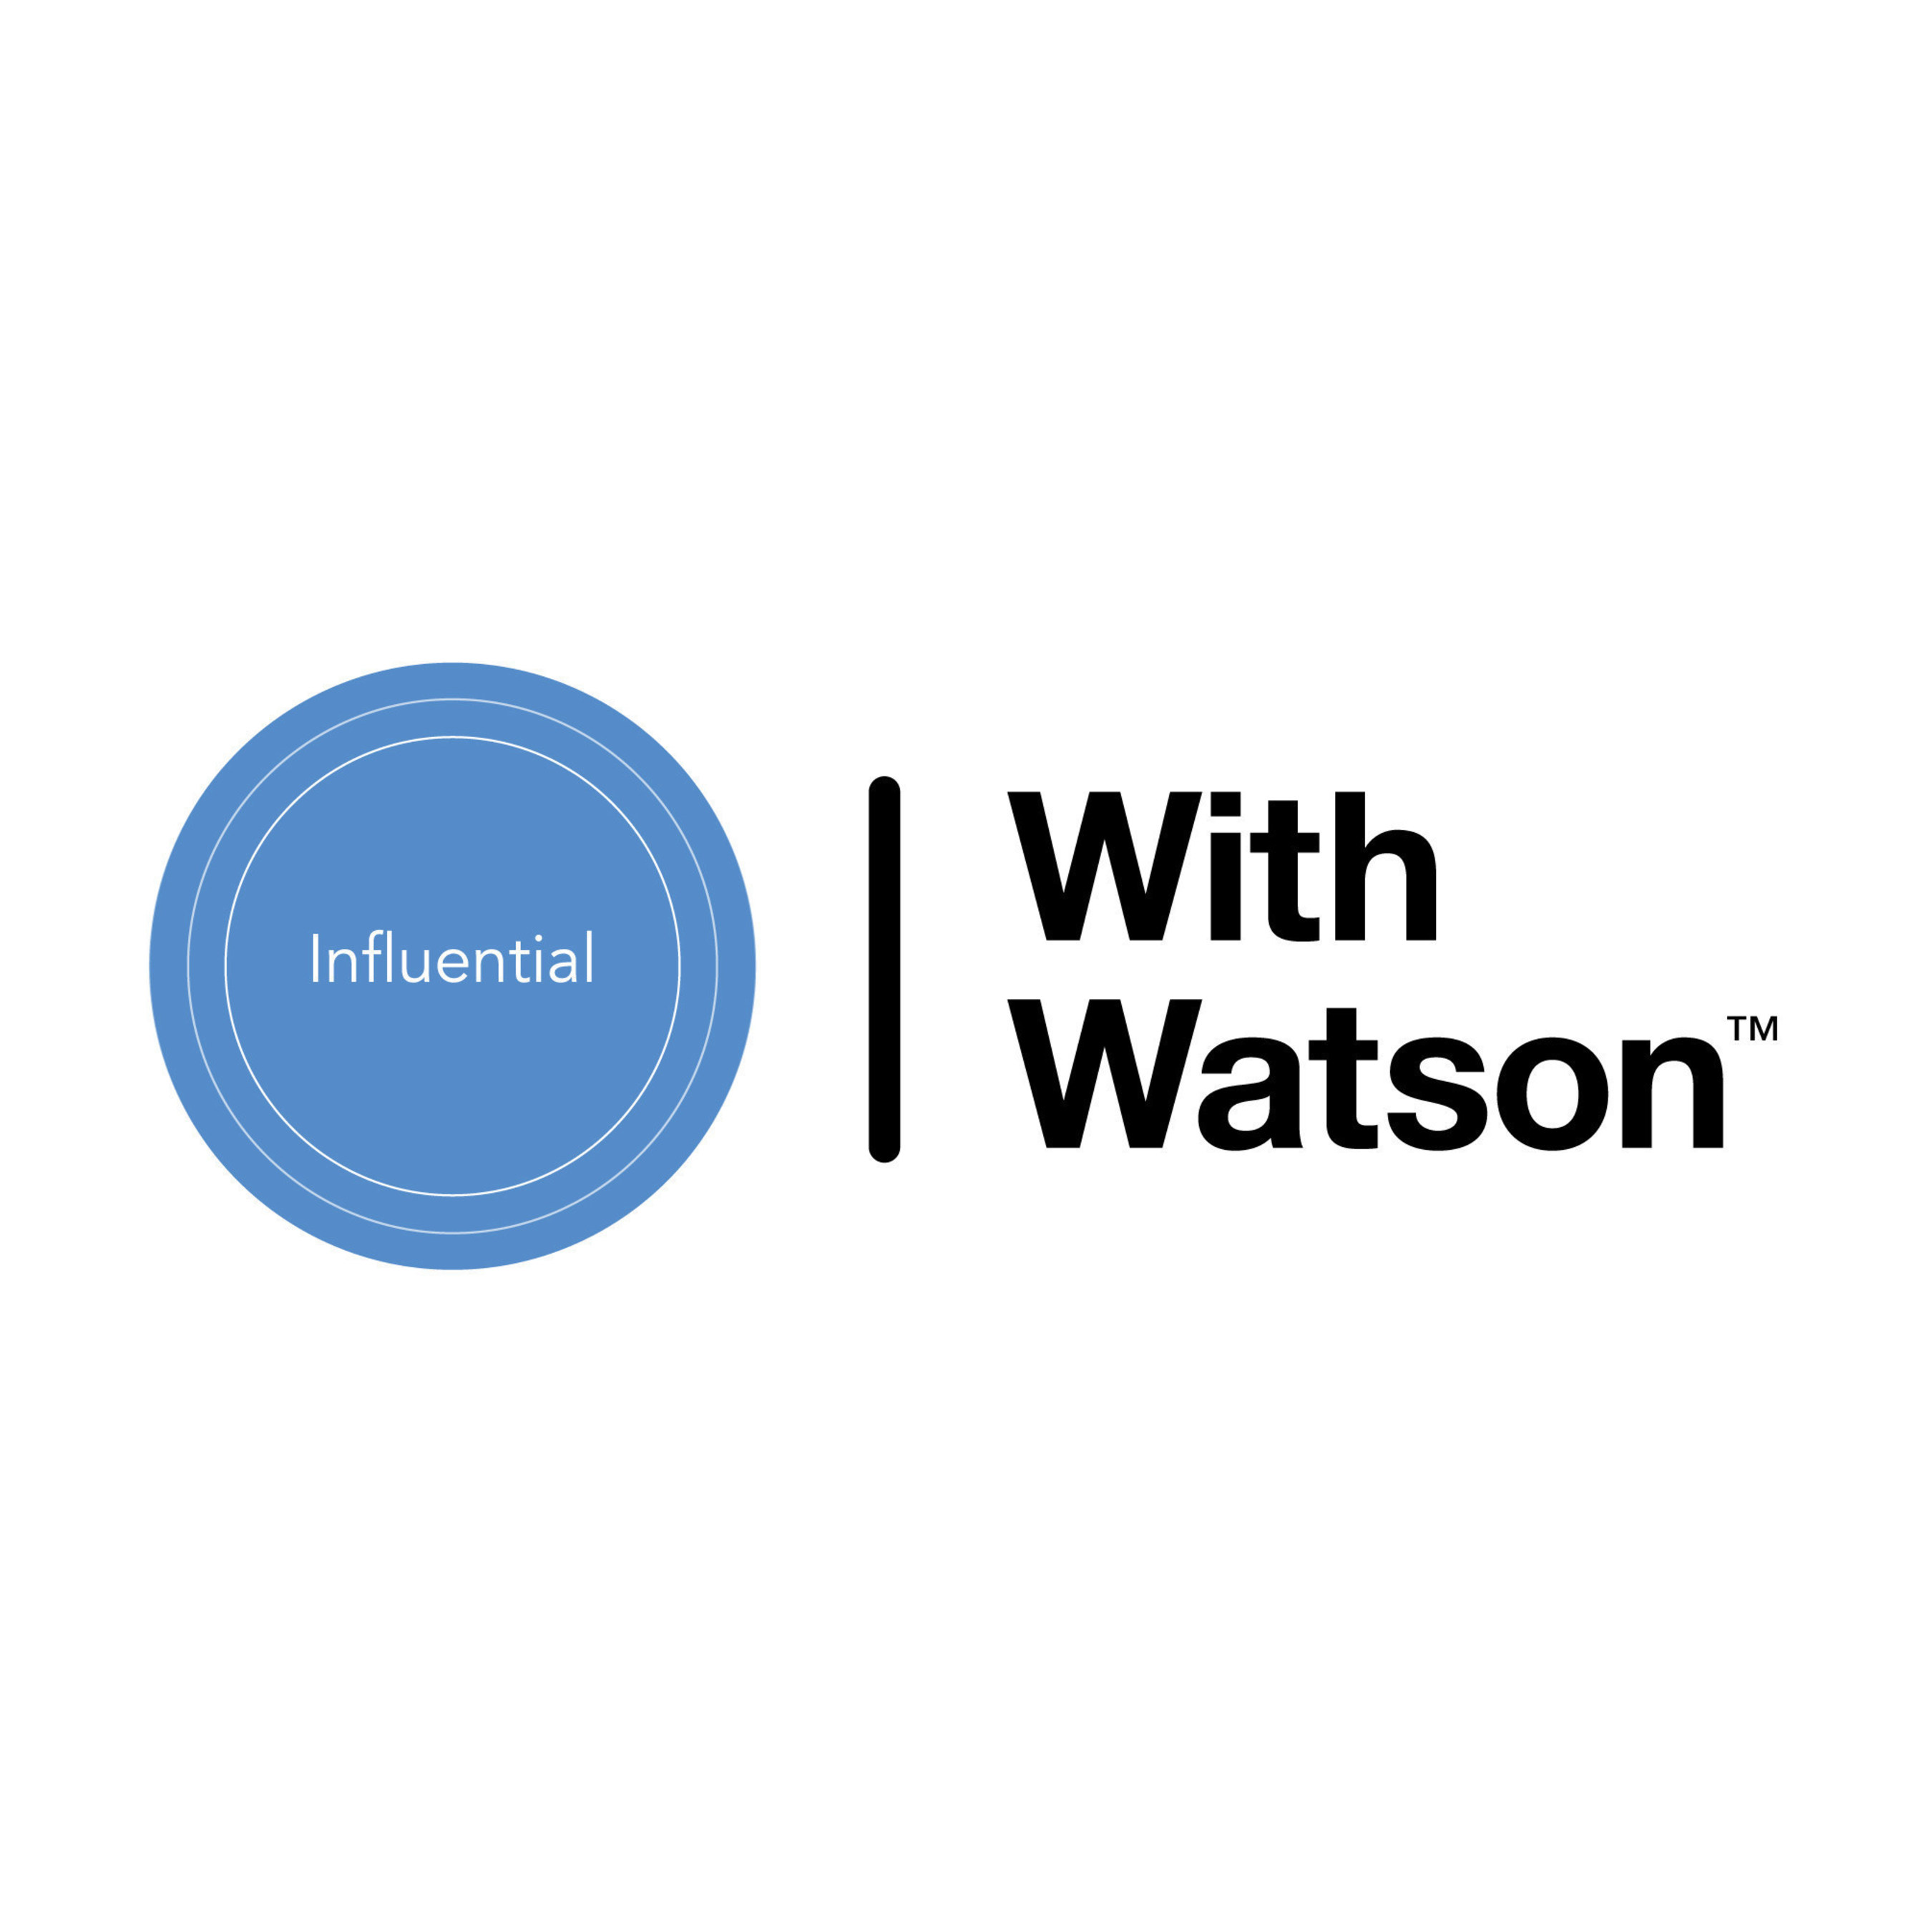 Conde Nast Partners With Influential To Integrate IBM Watson-Enabled Influencer Marketing Platform